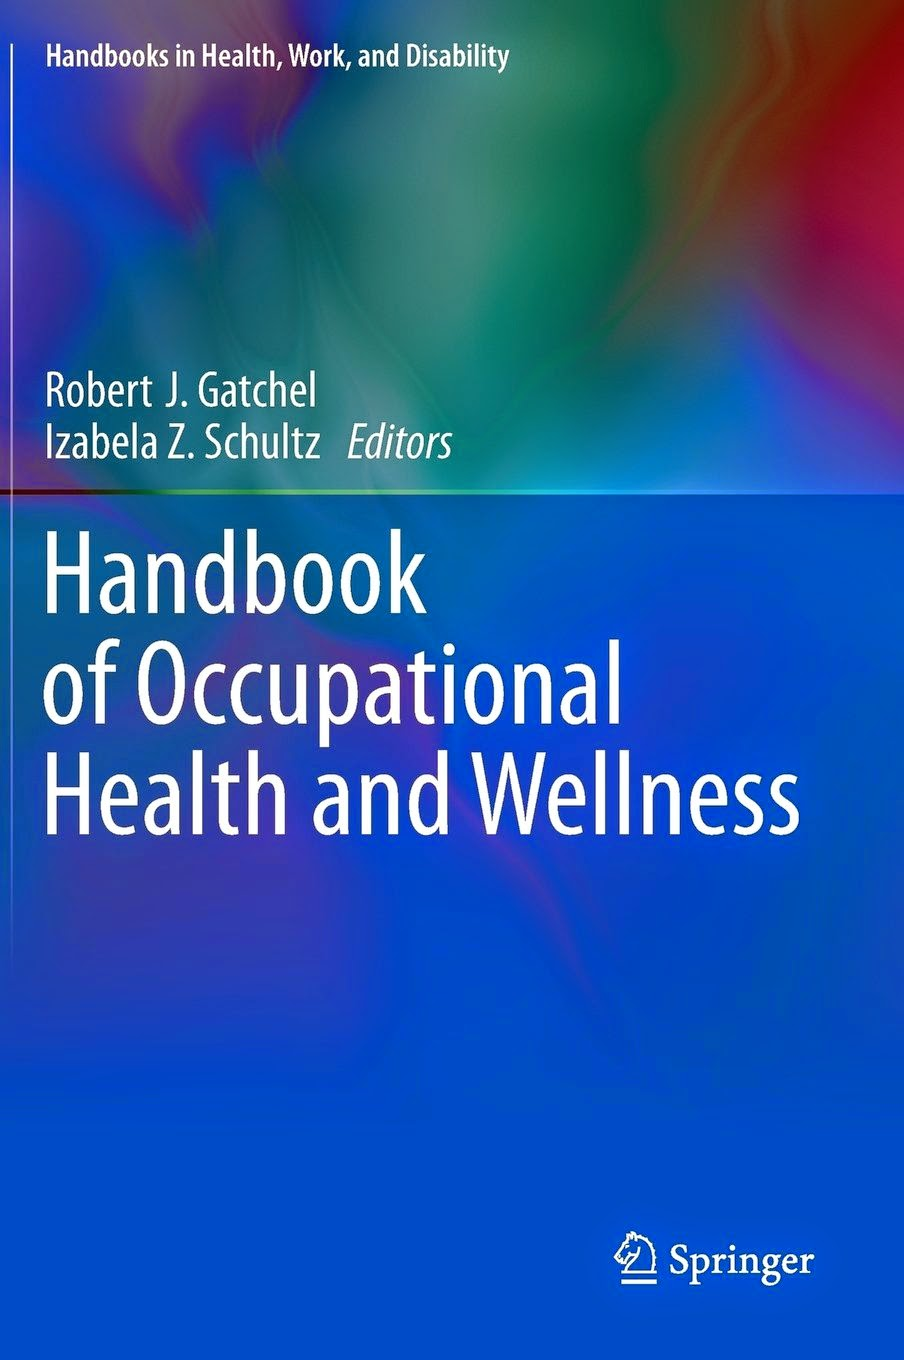 http://www.kingcheapebooks.com/2015/03/handbook-of-occupational-health-and.html